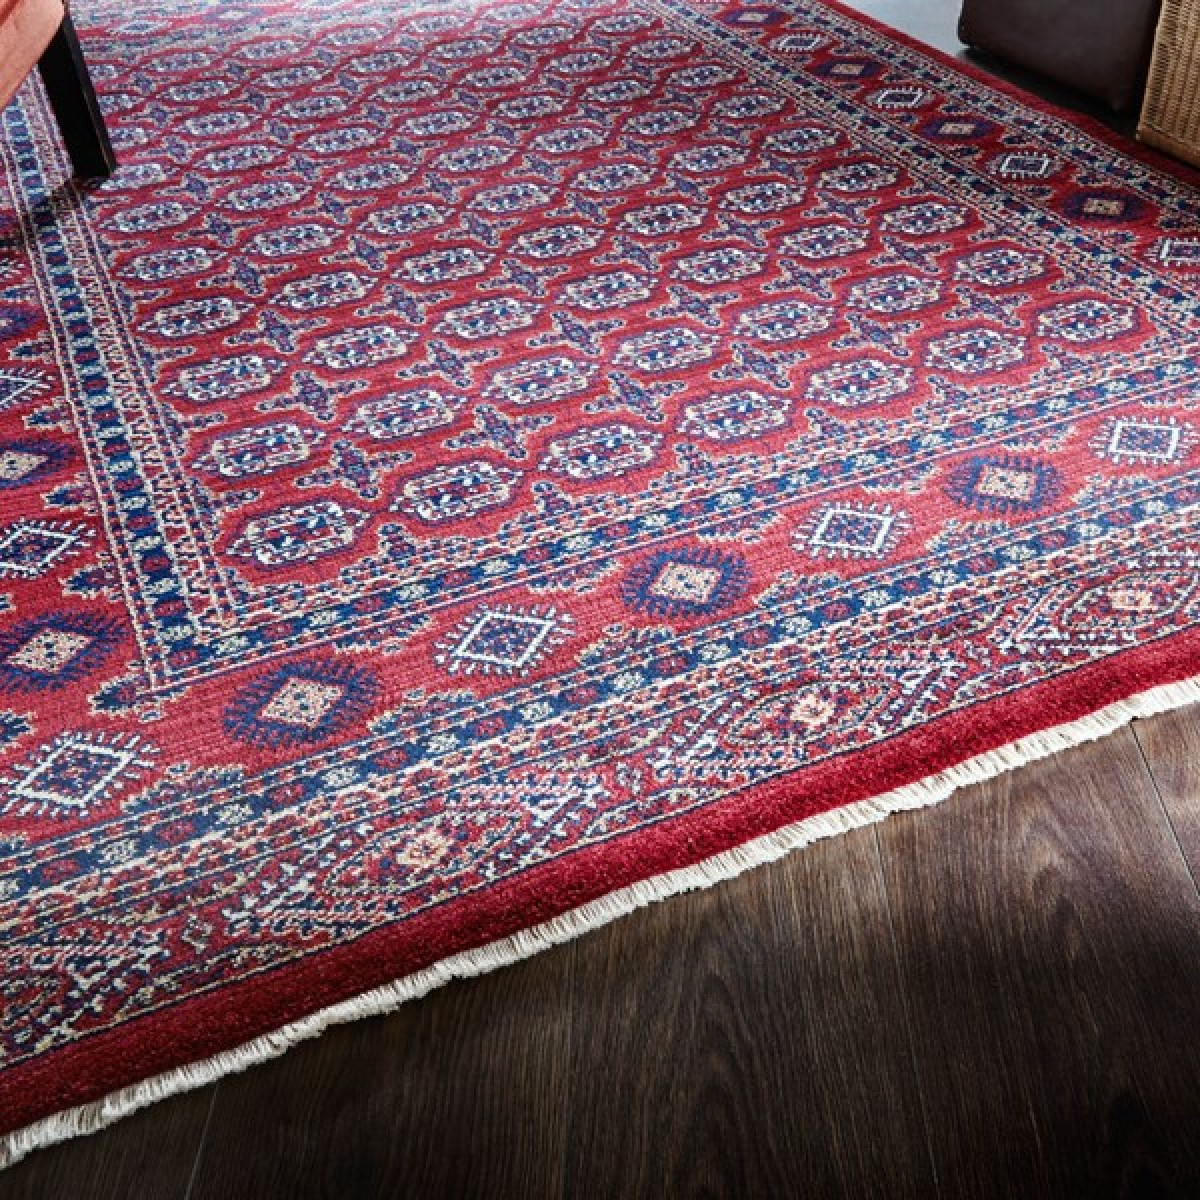 Pakistan Bokhara Rugs In Red: Persia Astara Red Bokhara Rug